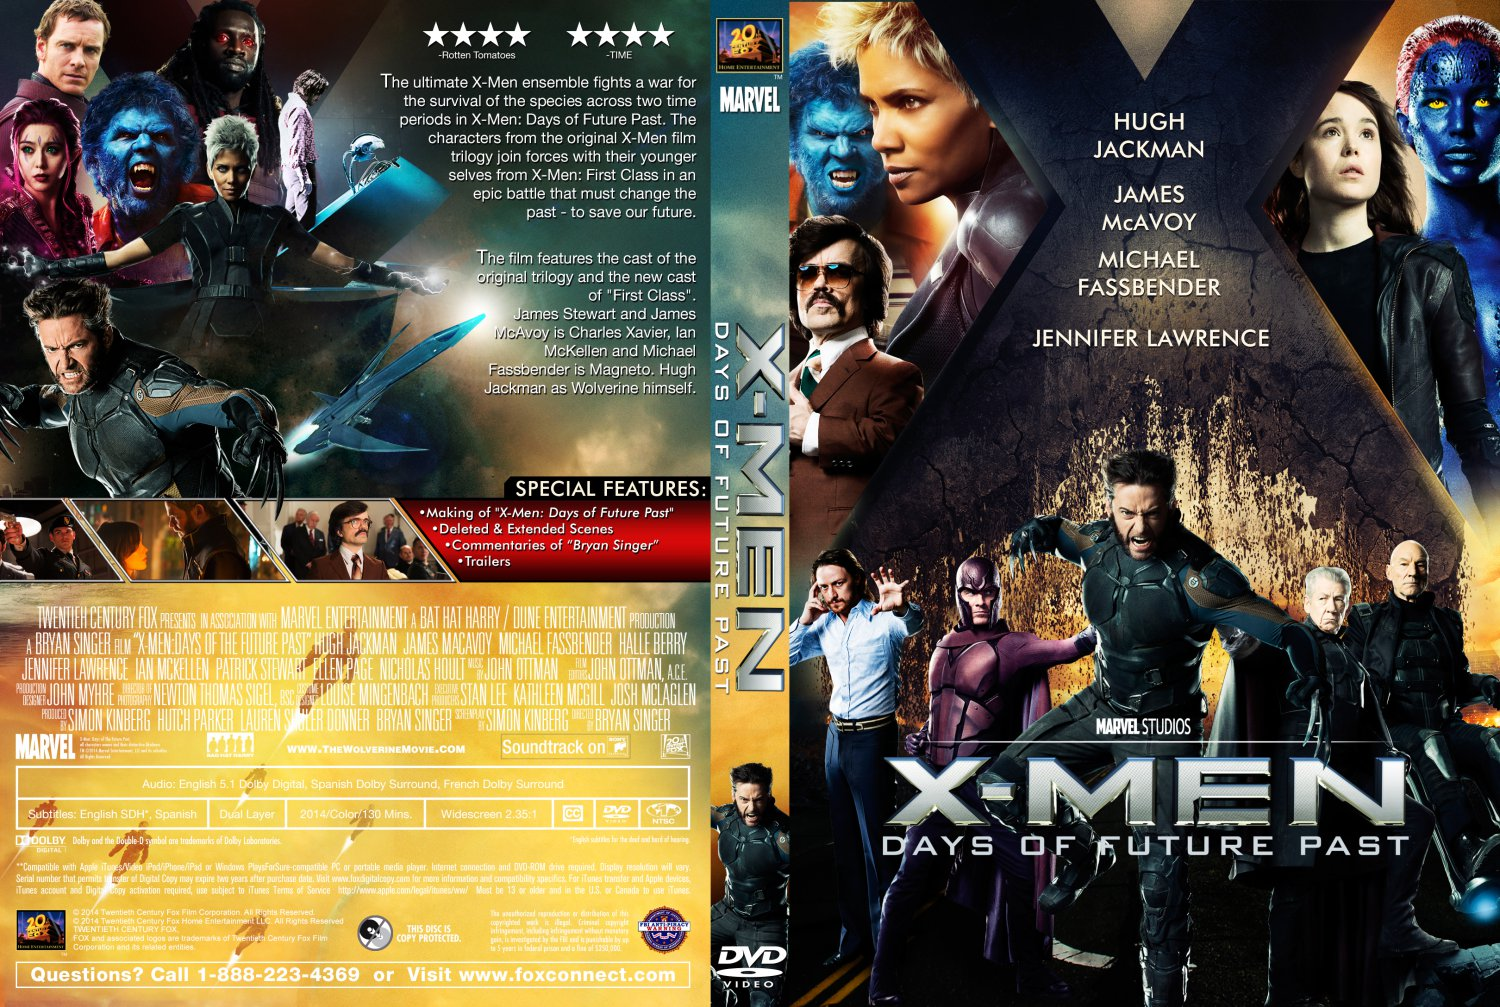 XMen Days of Future Past DVD Cover 2014 R1